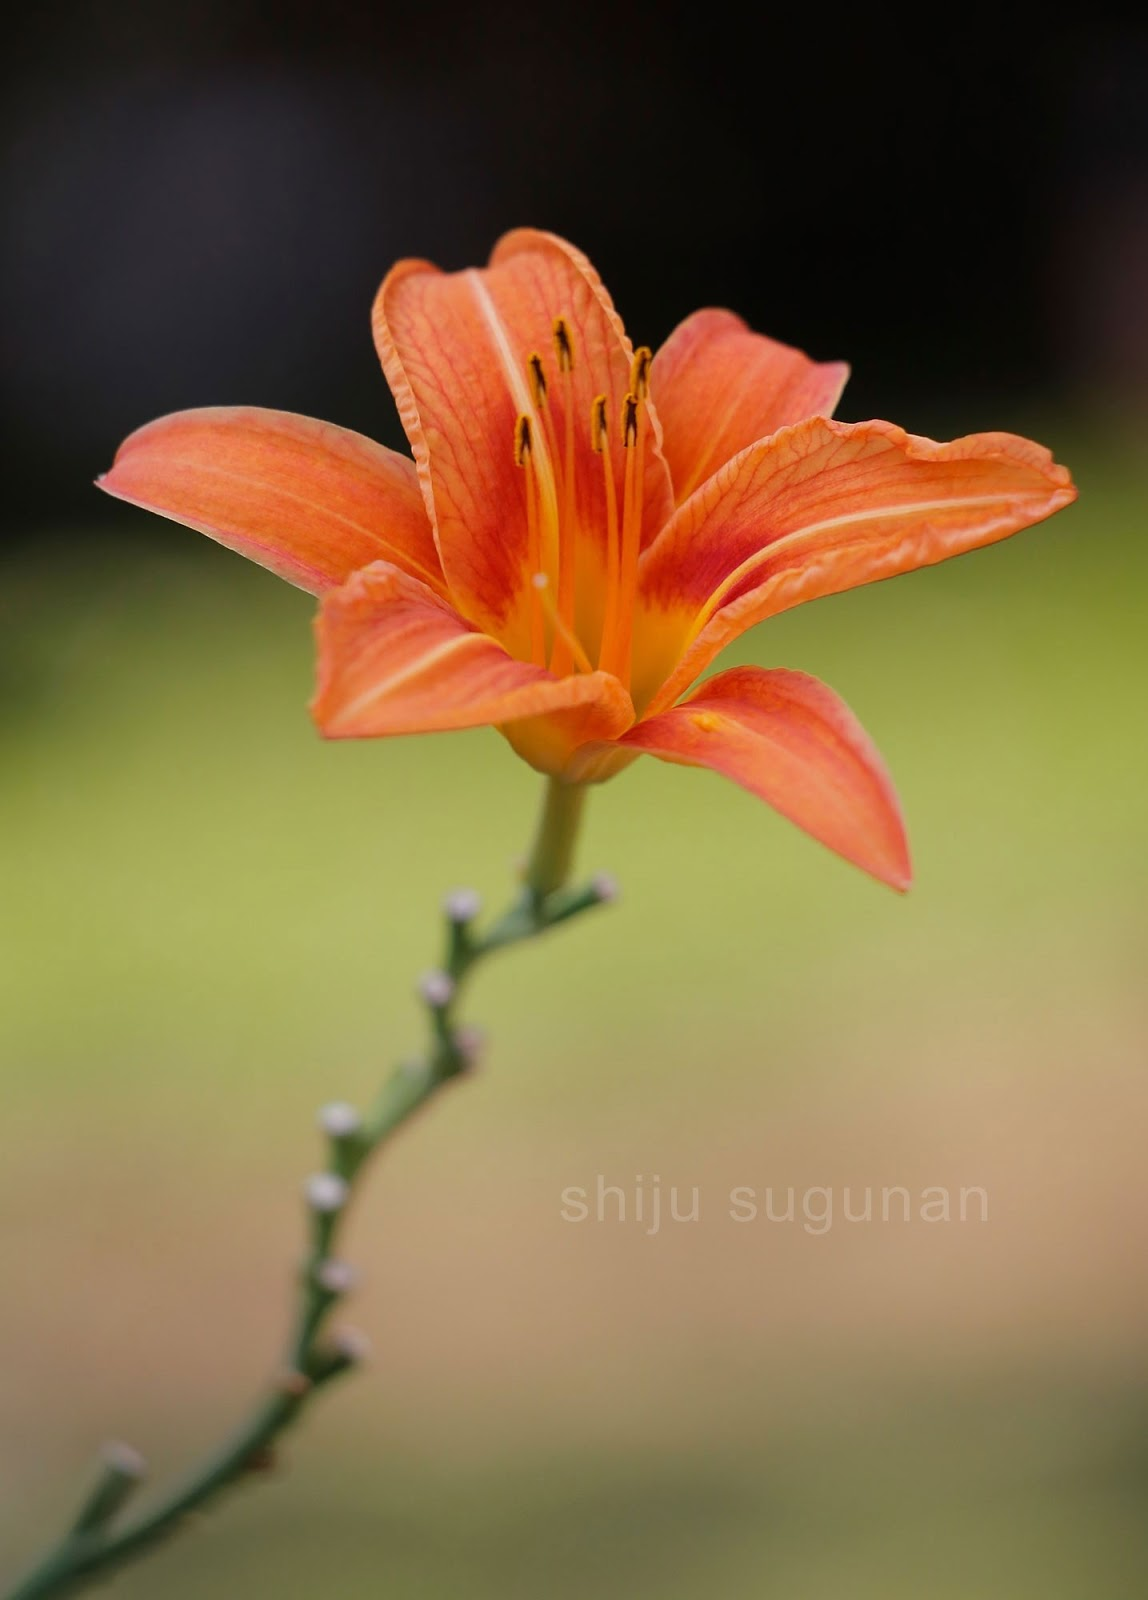 Orange Daylily Flower Photo by @shijuvenate